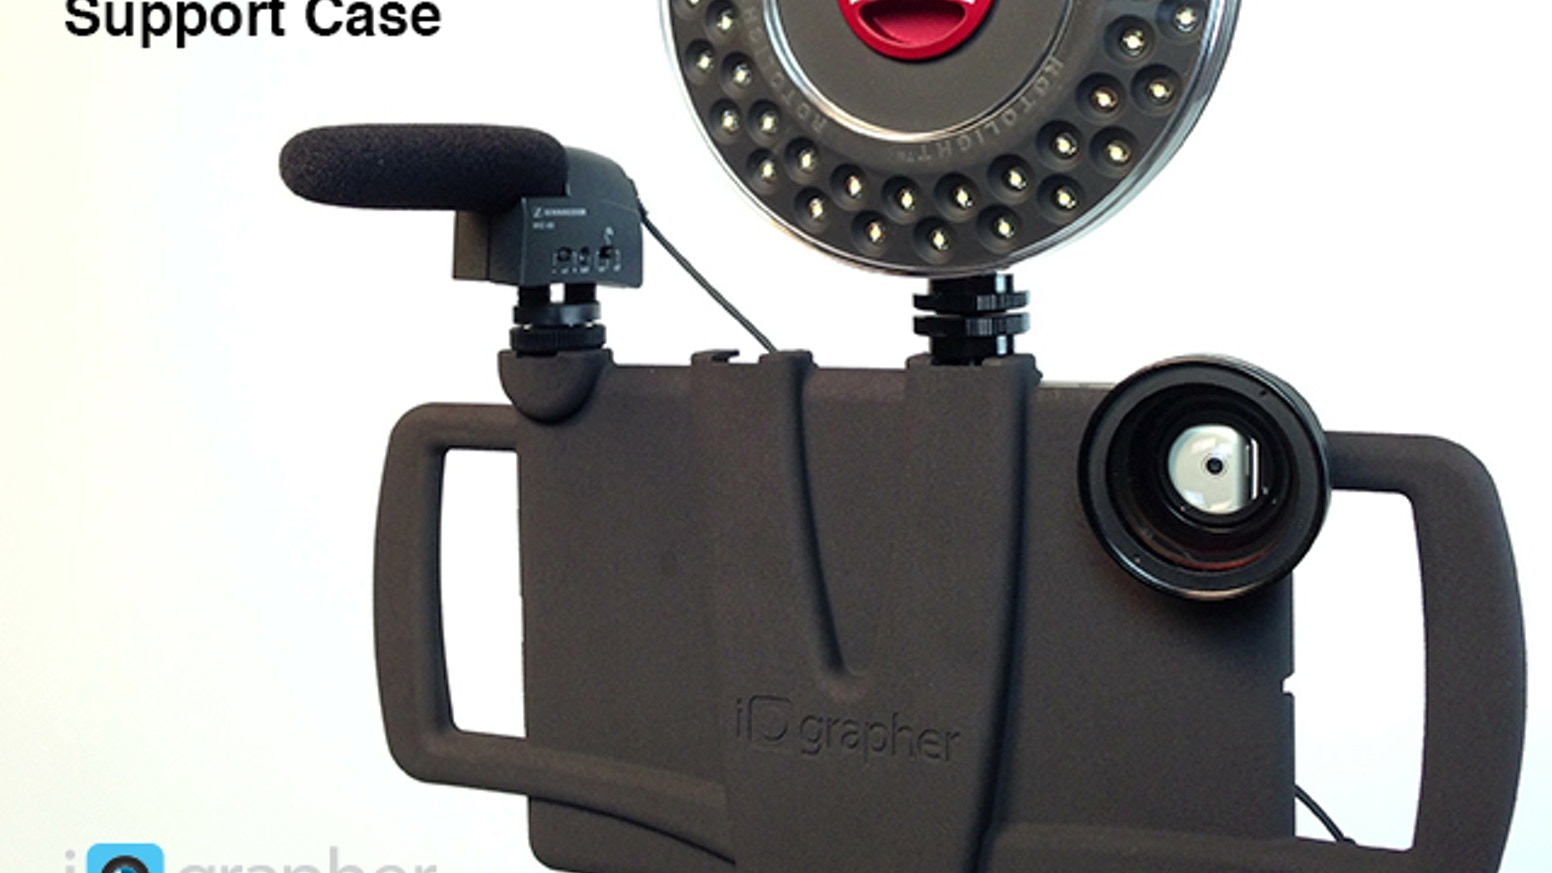 iOgrapher Support Case for iPad Mini! Use handles, add lenses, audio equipment, lights and mount on a tripod!